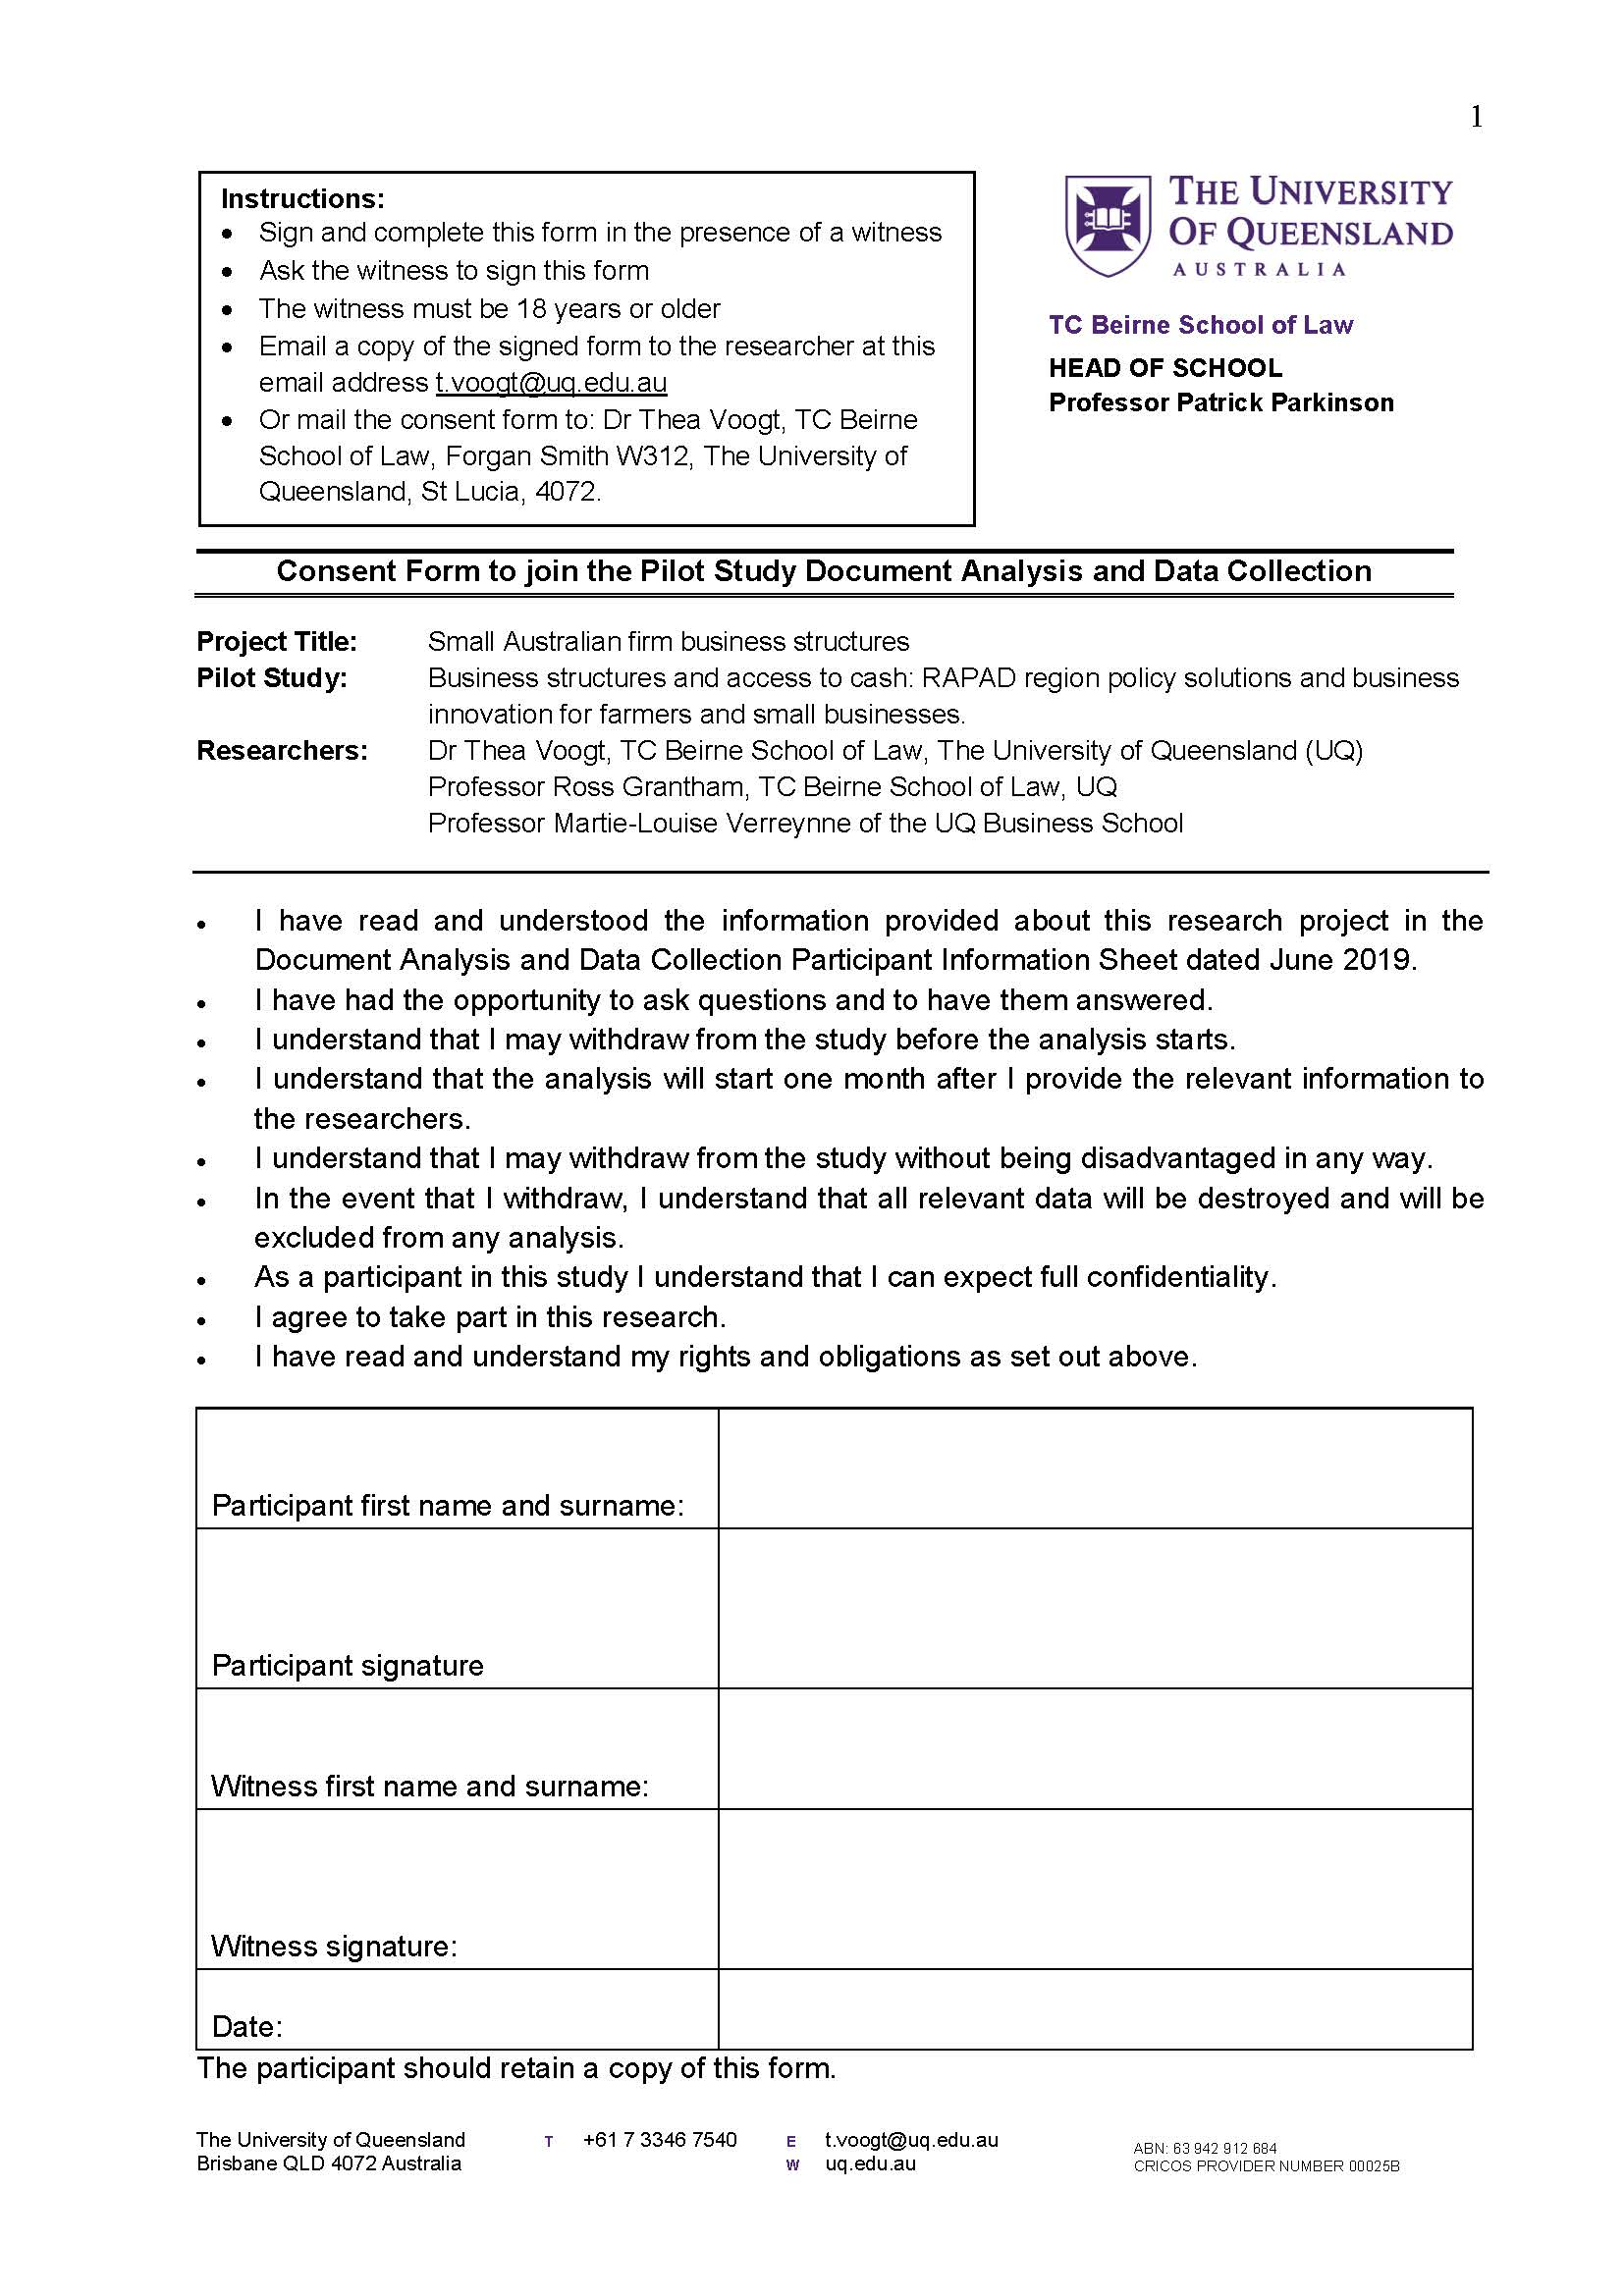 Thumbnail of Analysis and Data Collection Consent form